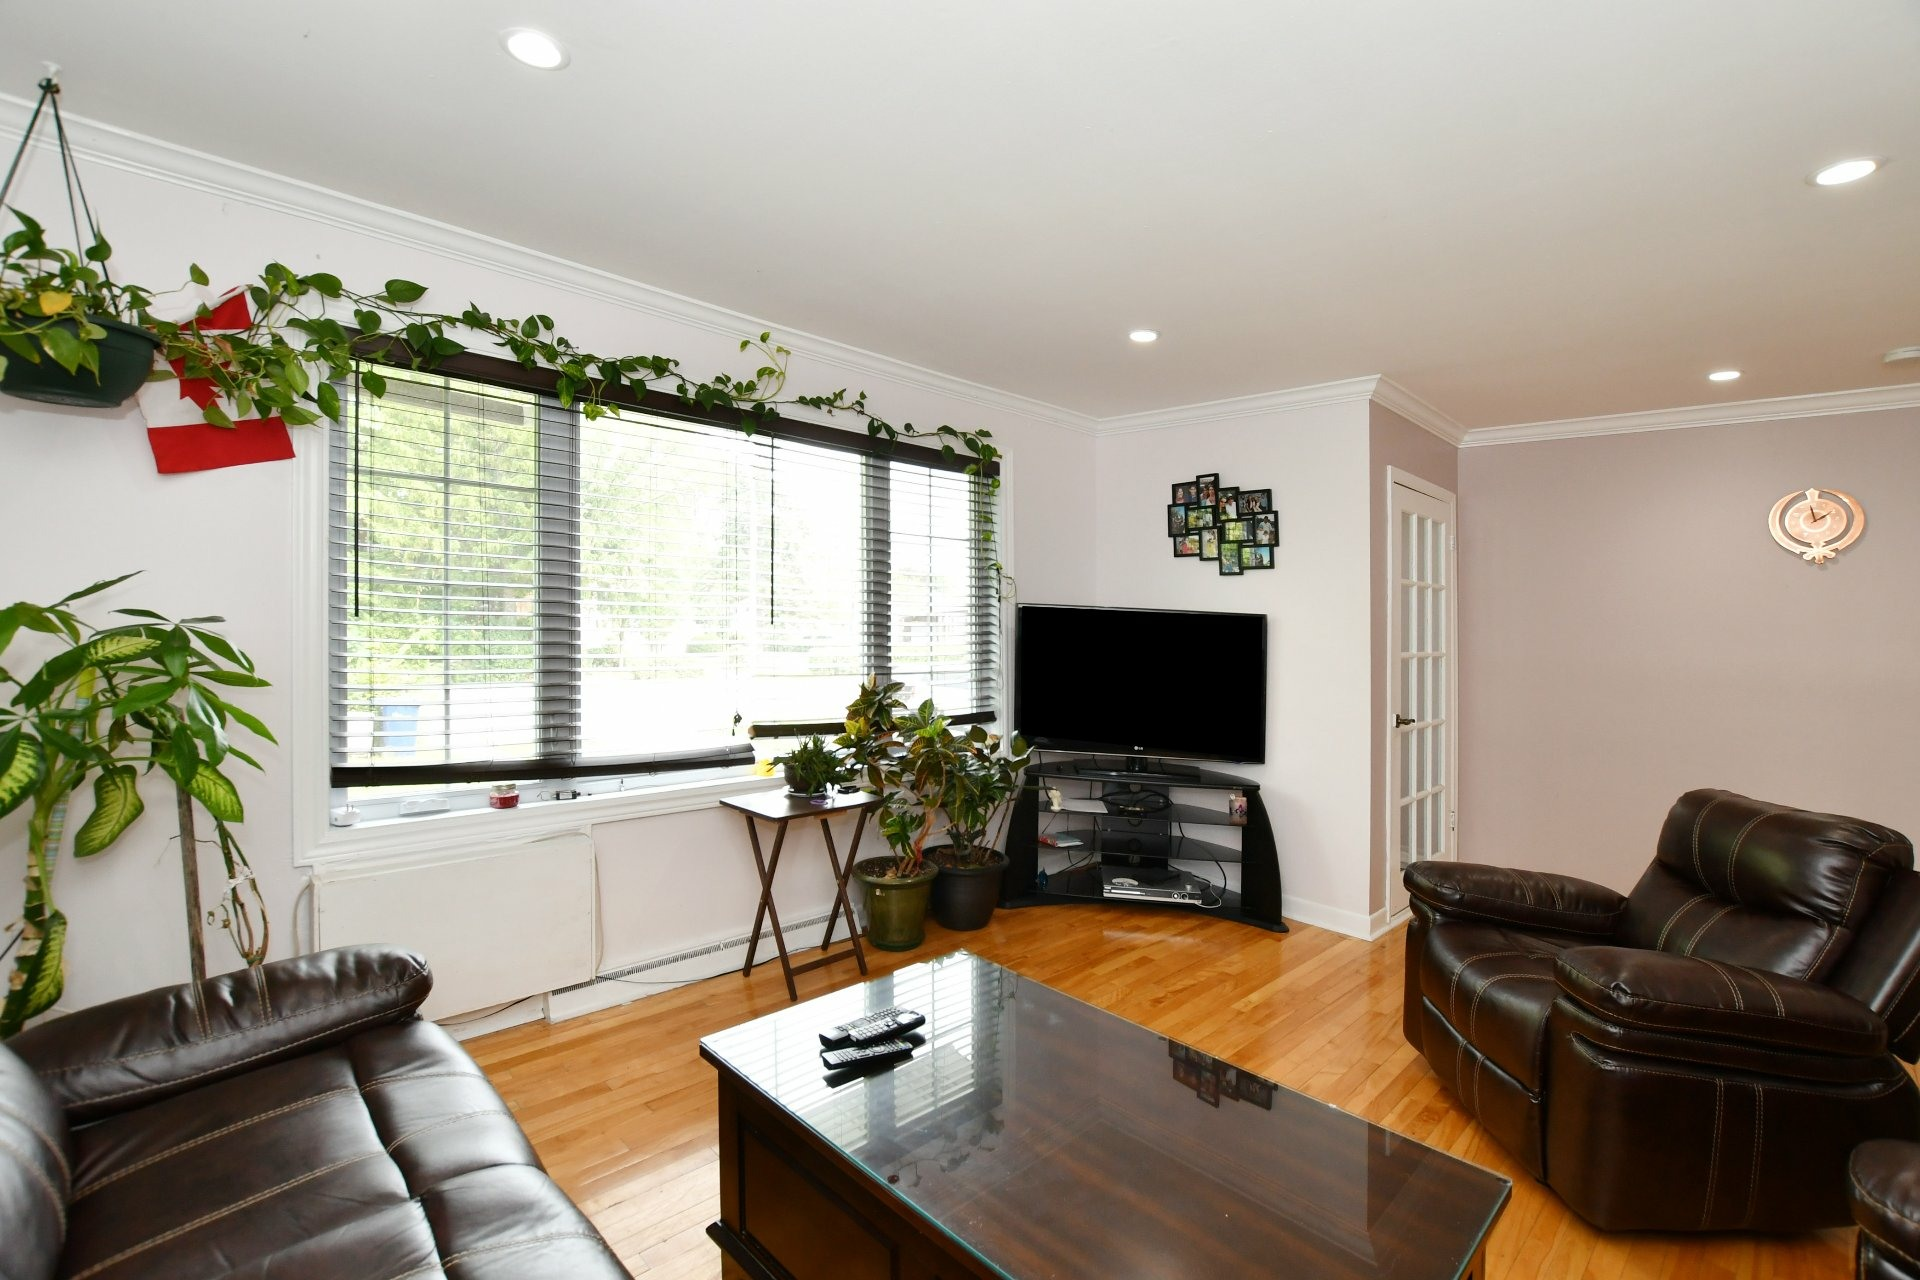 image 8 - House For sale Laval Chomedey  - 7 rooms